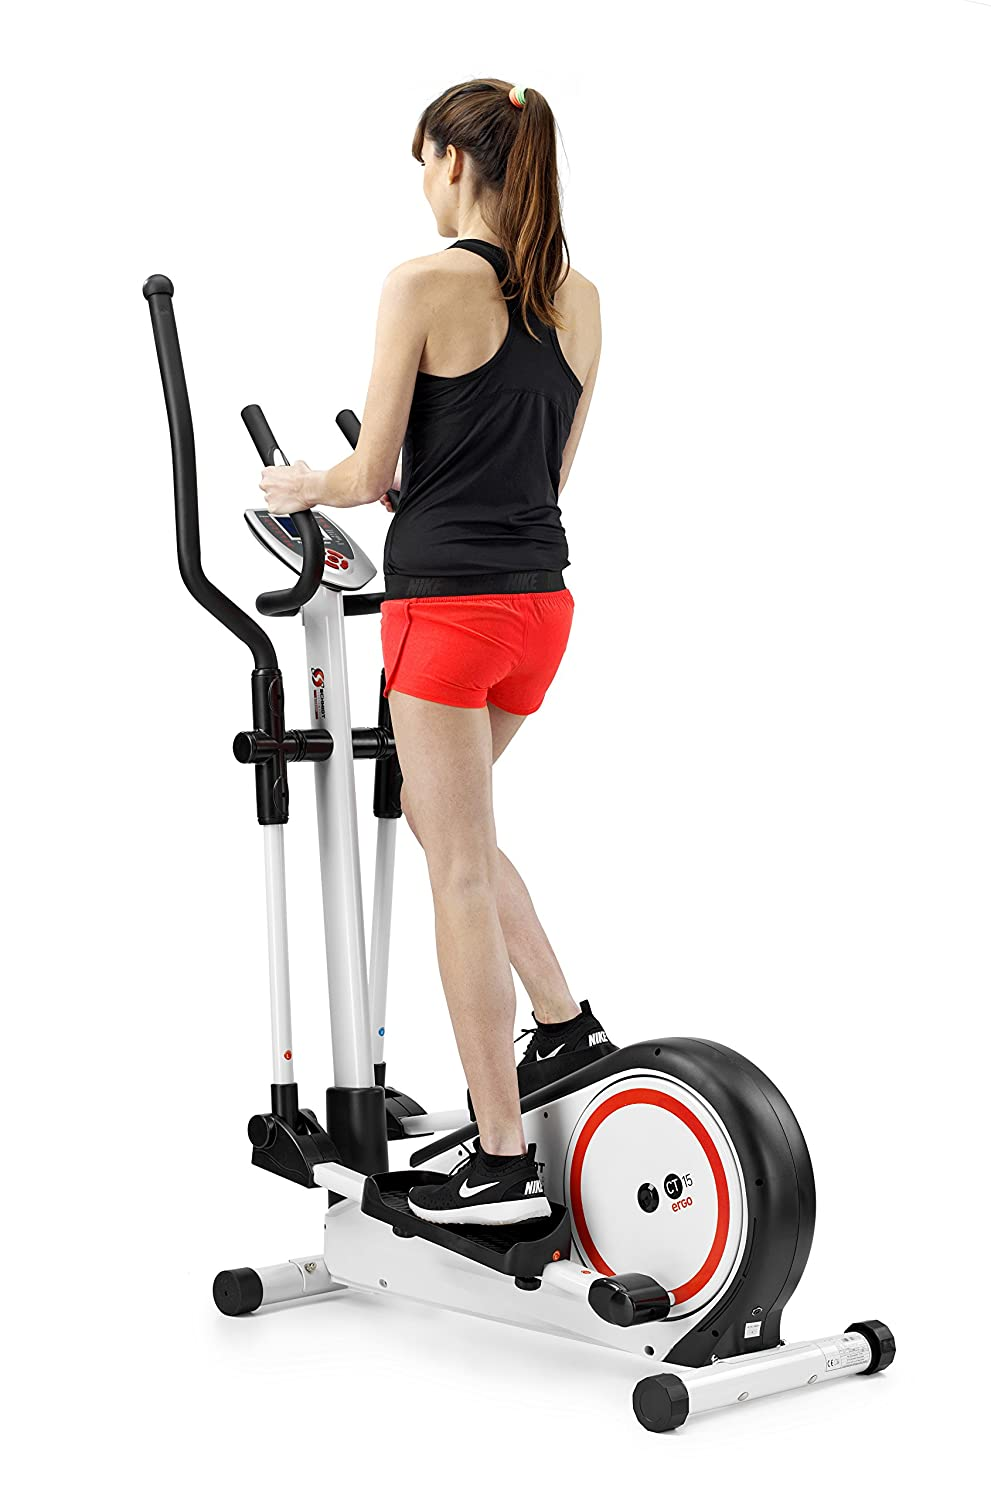 Schmidt Sportsworld Crosstrainer CT15 Ergo - Elíptica de Fitness, Color, Talla One Size: Amazon.es: Deportes y aire libre